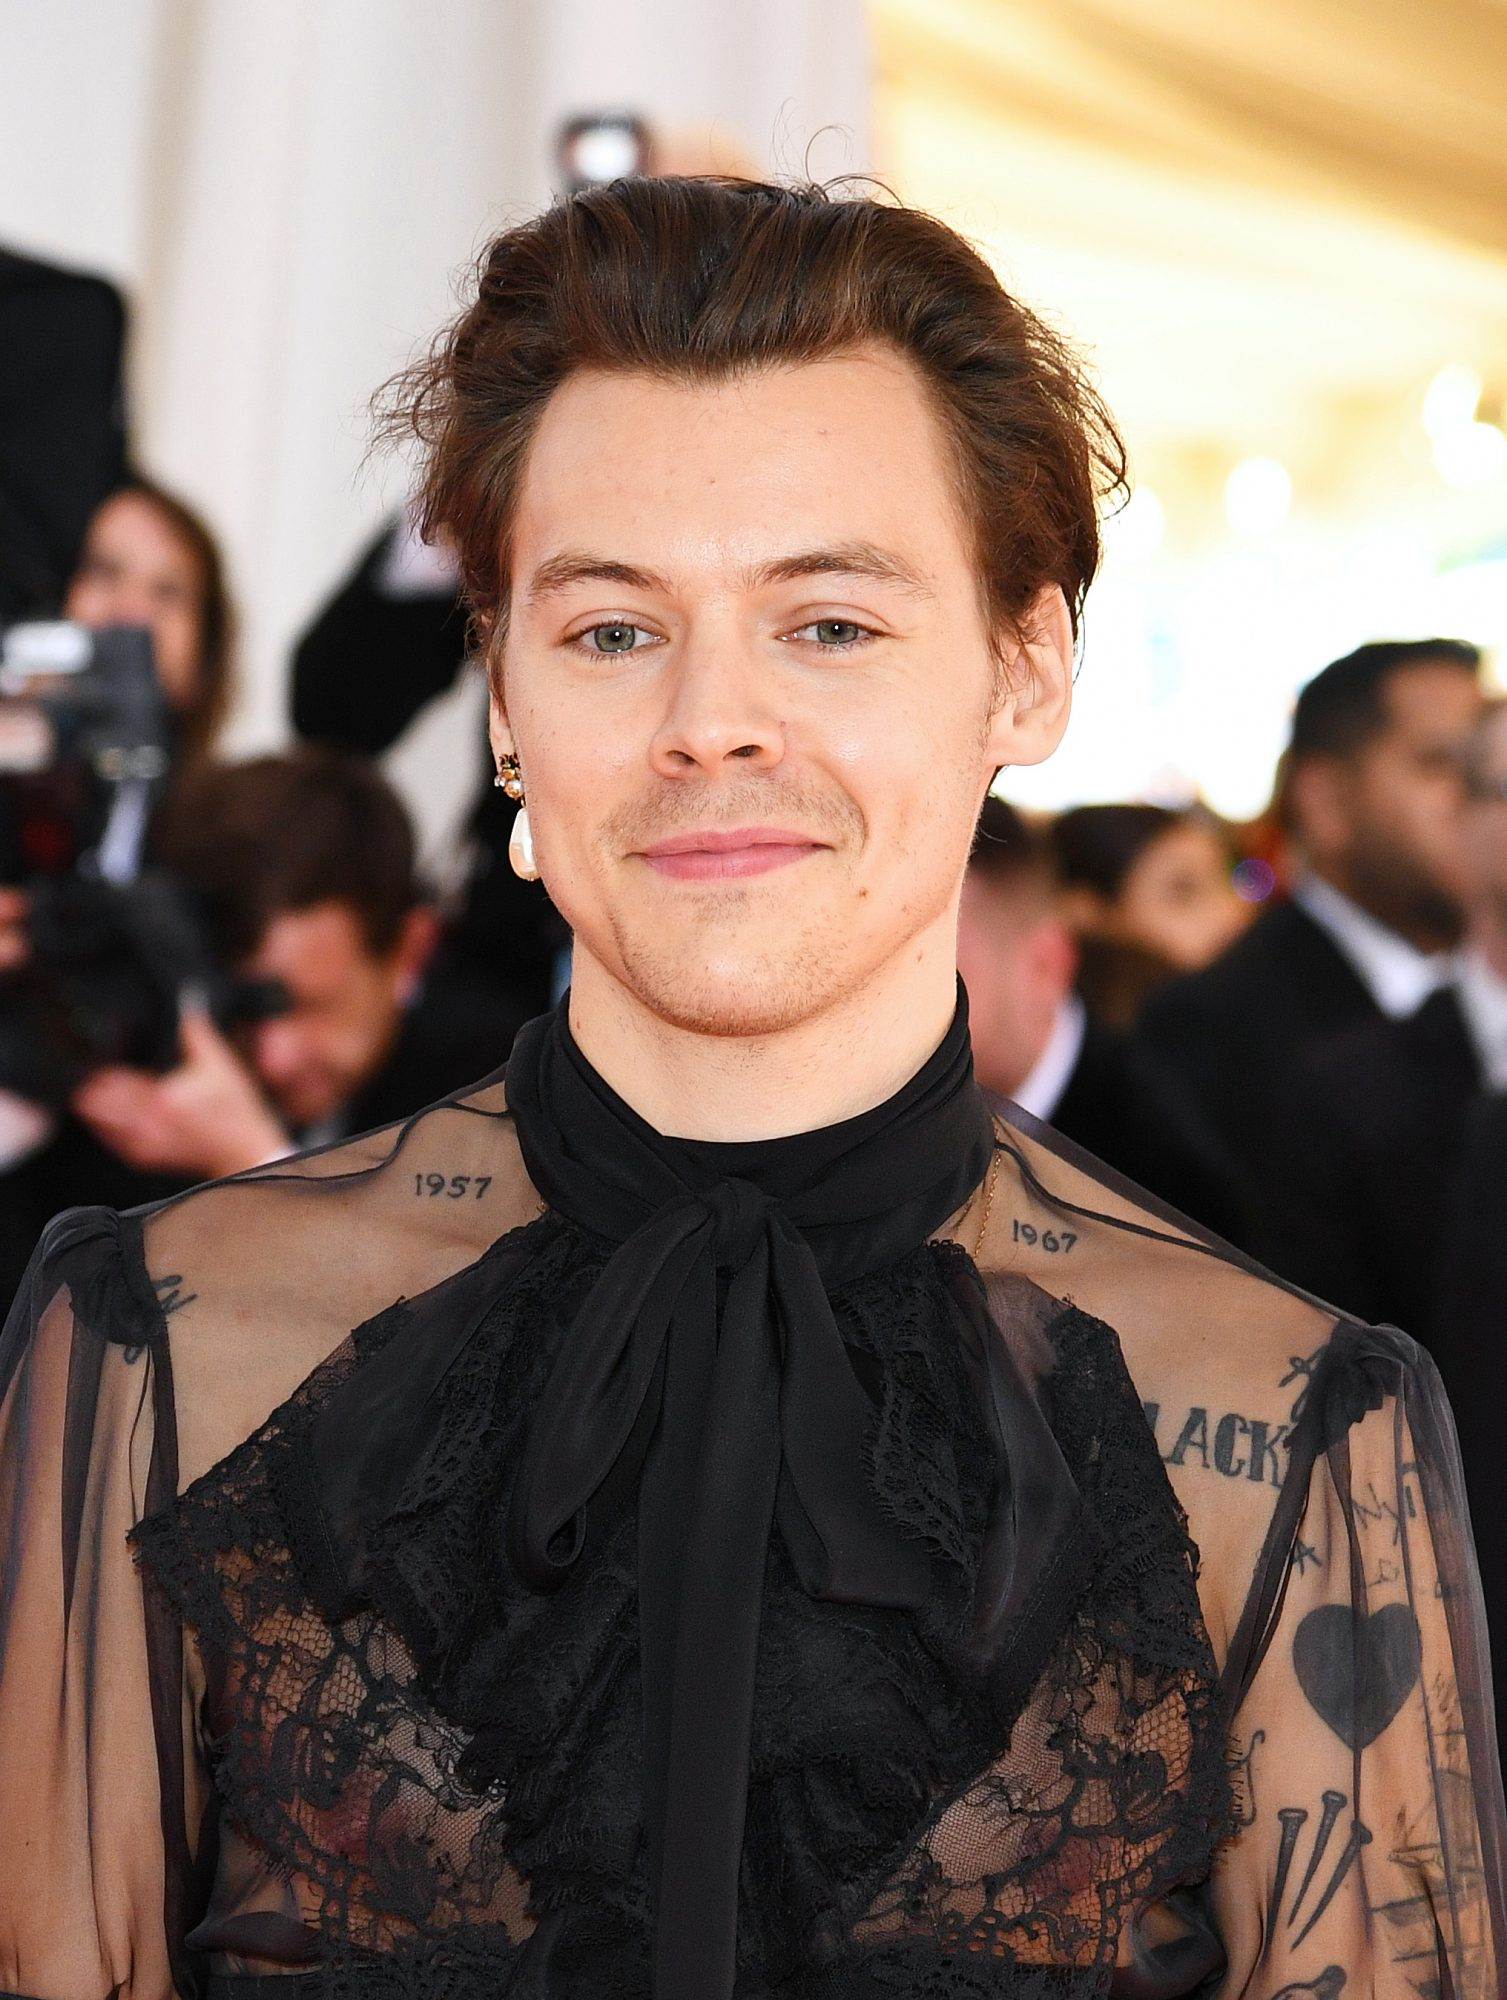 Harry Styles Just Wore a Sheer Jumpsuit to the Met Gala, and OMG, He Looks So Good